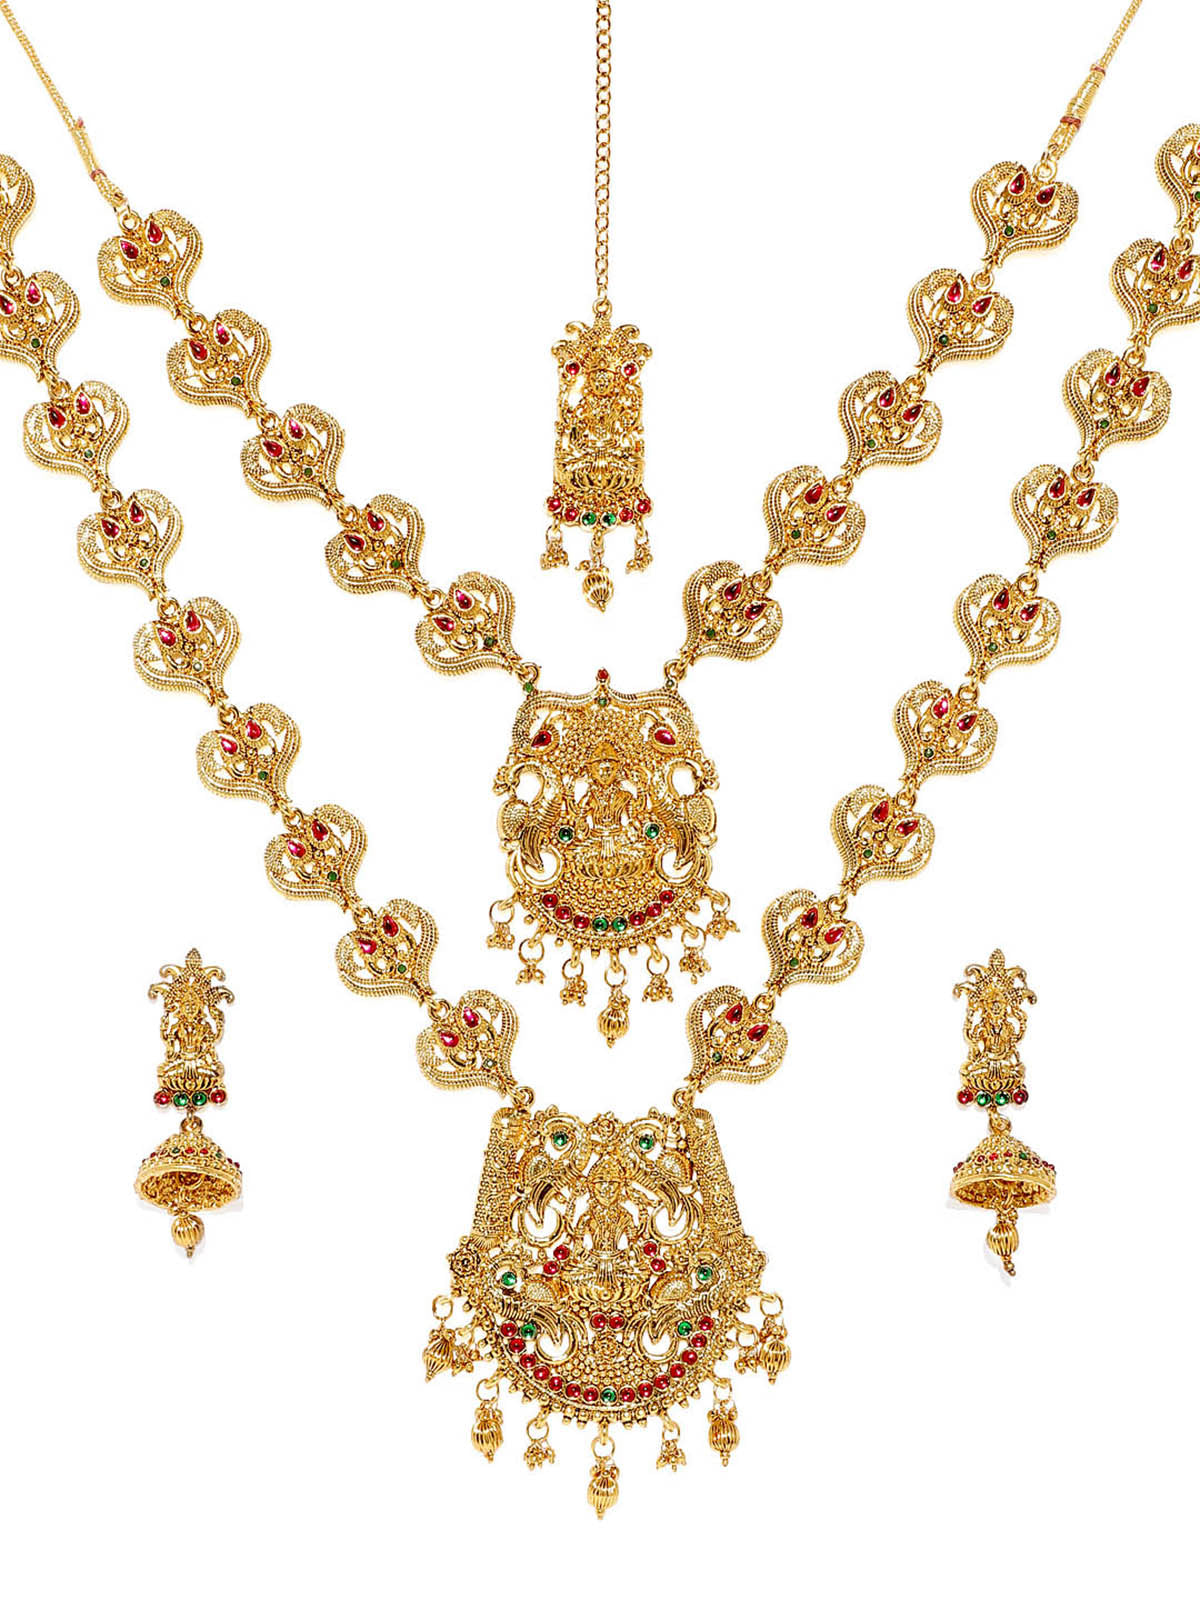 Zaveri Pearls Sacred Goddess Bridal Temple Necklace Set-ZAVERI PEARLS1-Jewellery Set